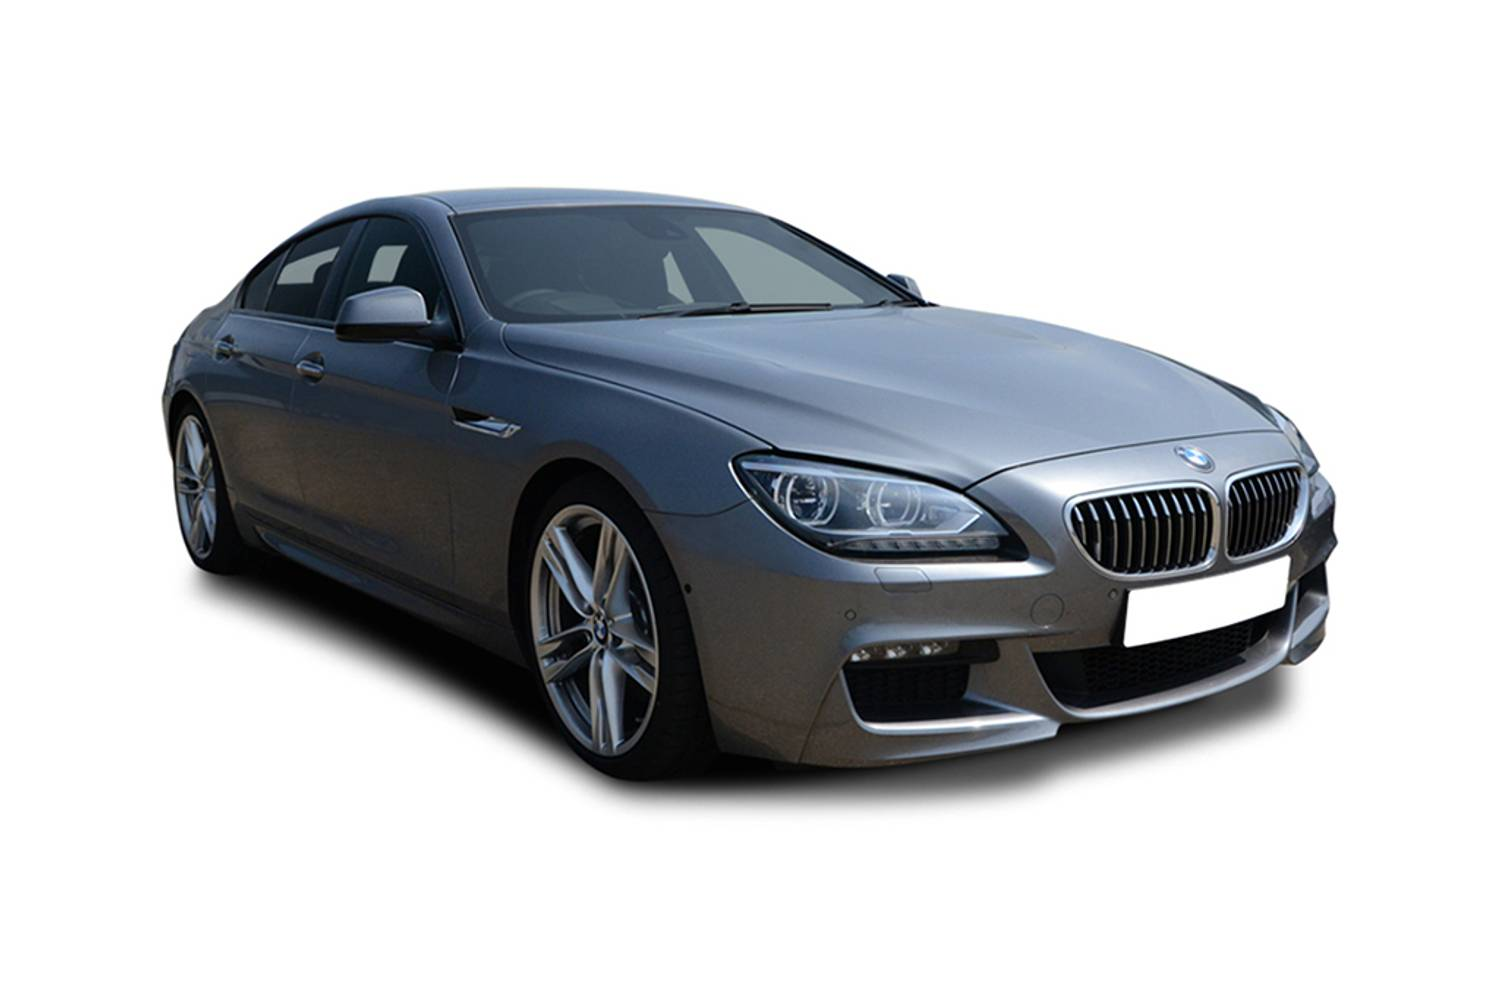 new bmw 6 series gran diesel coupe 640d m sport 4 door auto 2012 for sale. Black Bedroom Furniture Sets. Home Design Ideas